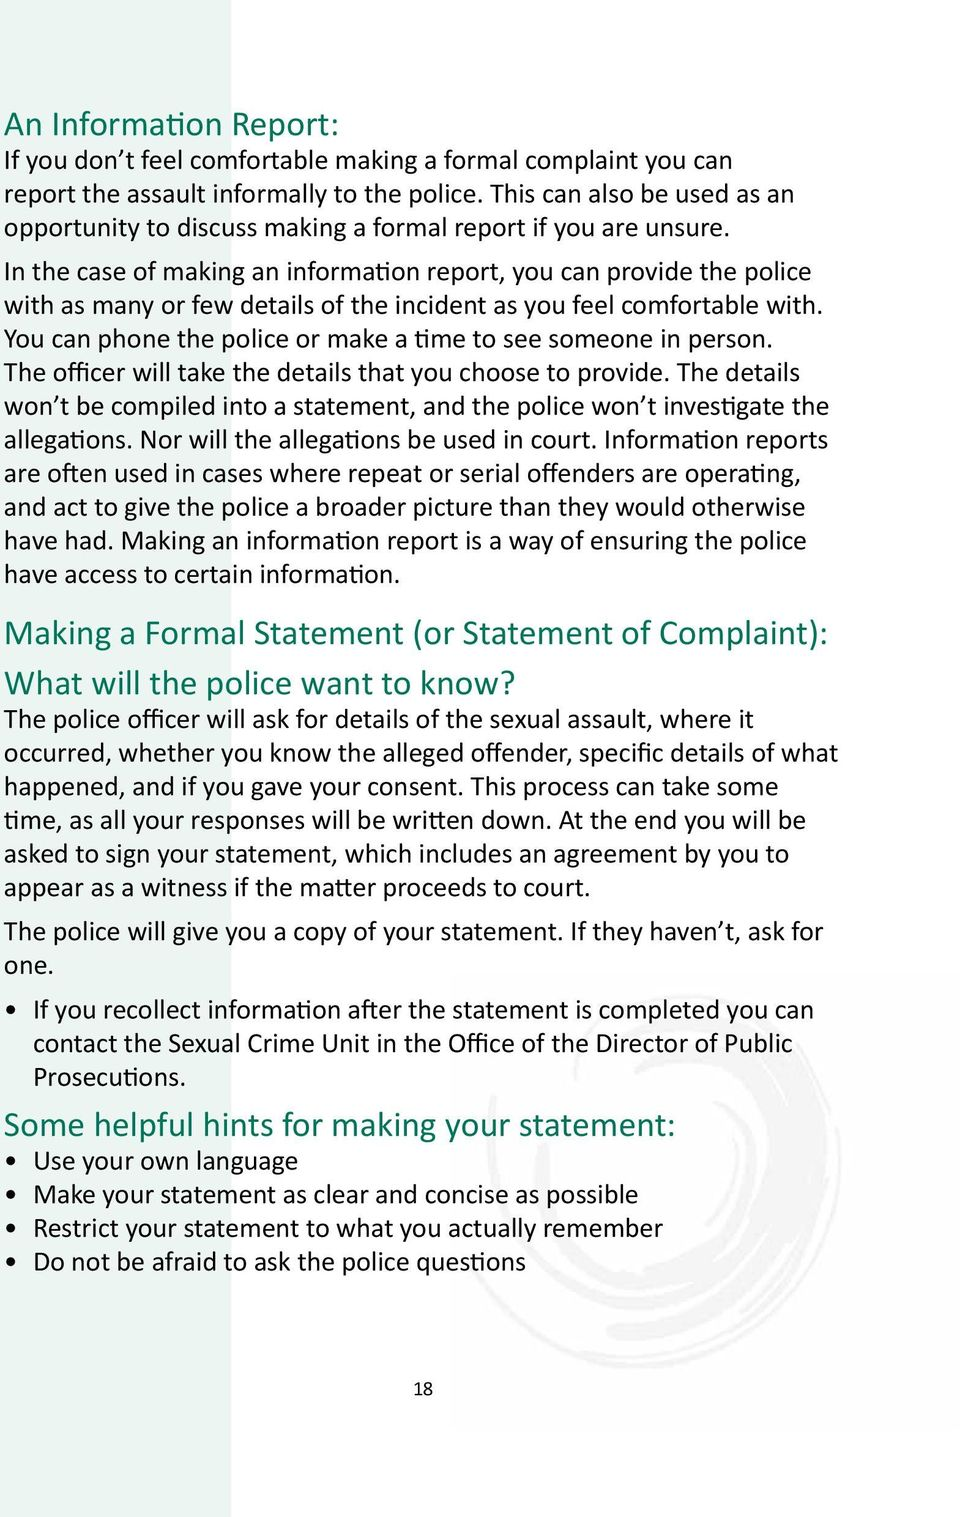 In the case of making an information report, you can provide the police with as many or few details of the incident as you feel comfortable with.